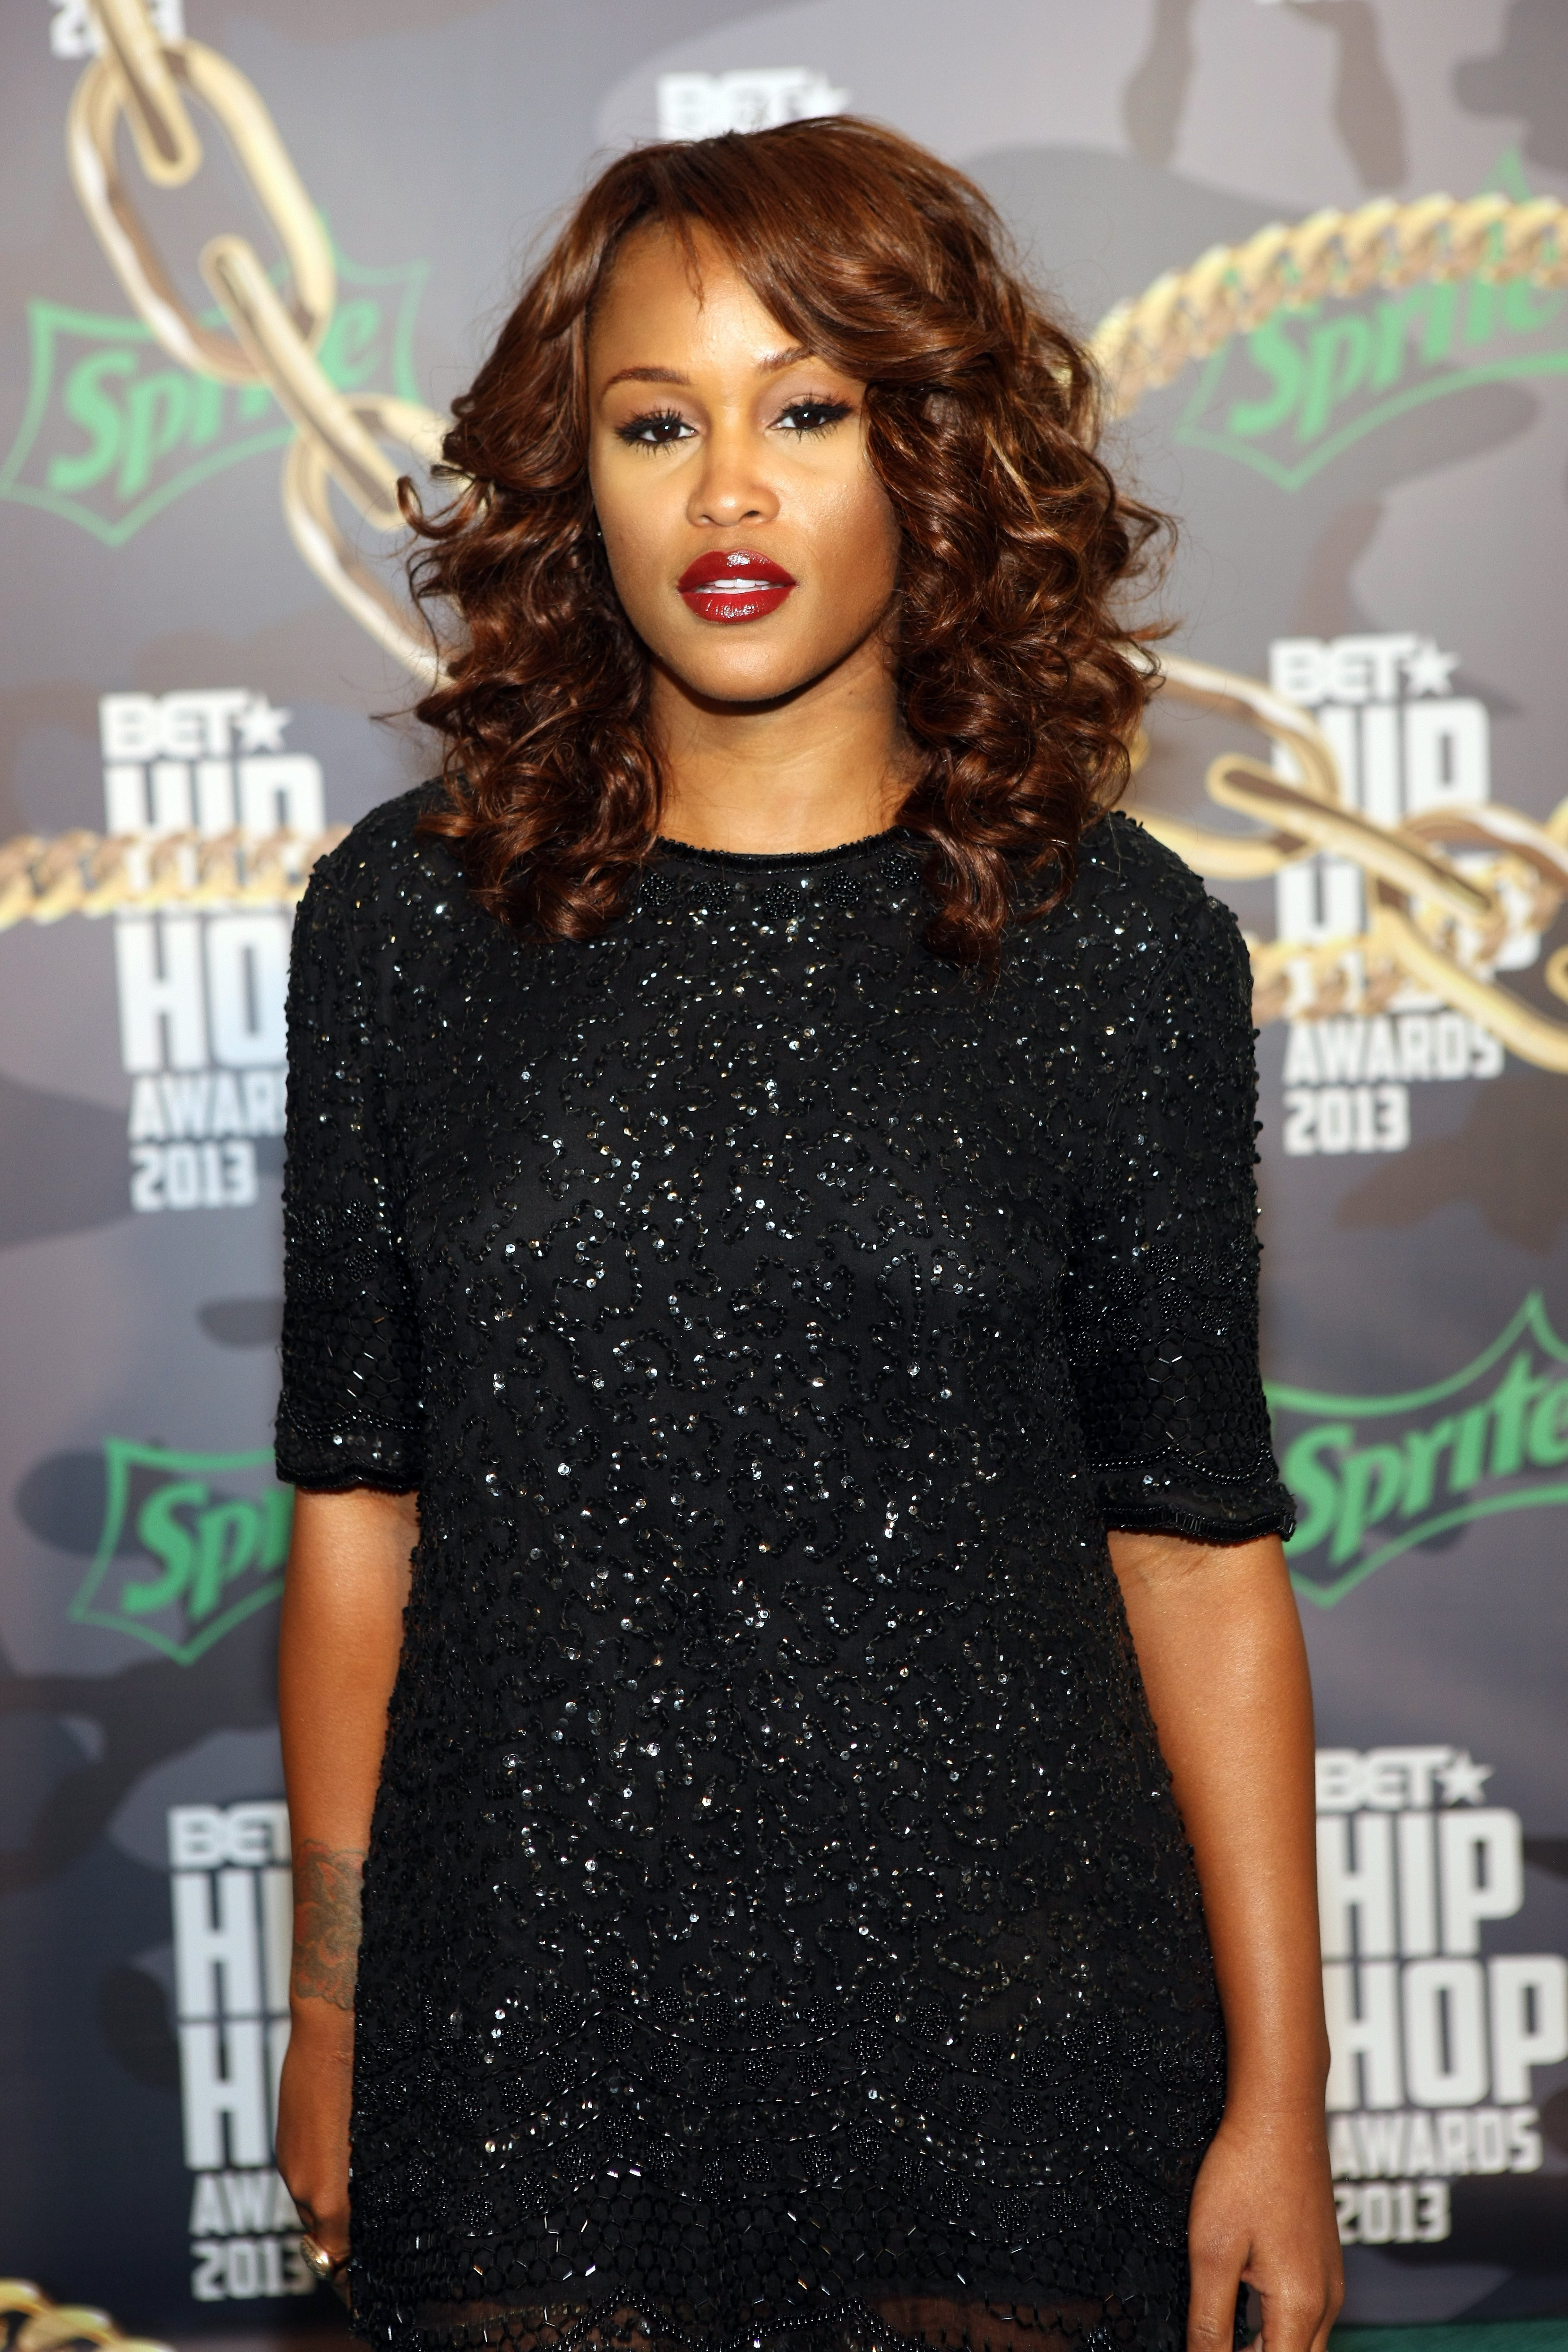 Eve at the BET Hip Hop Awards on Sept. 28, 2013 in Atlanta, Georgia | Photo: Getty Images